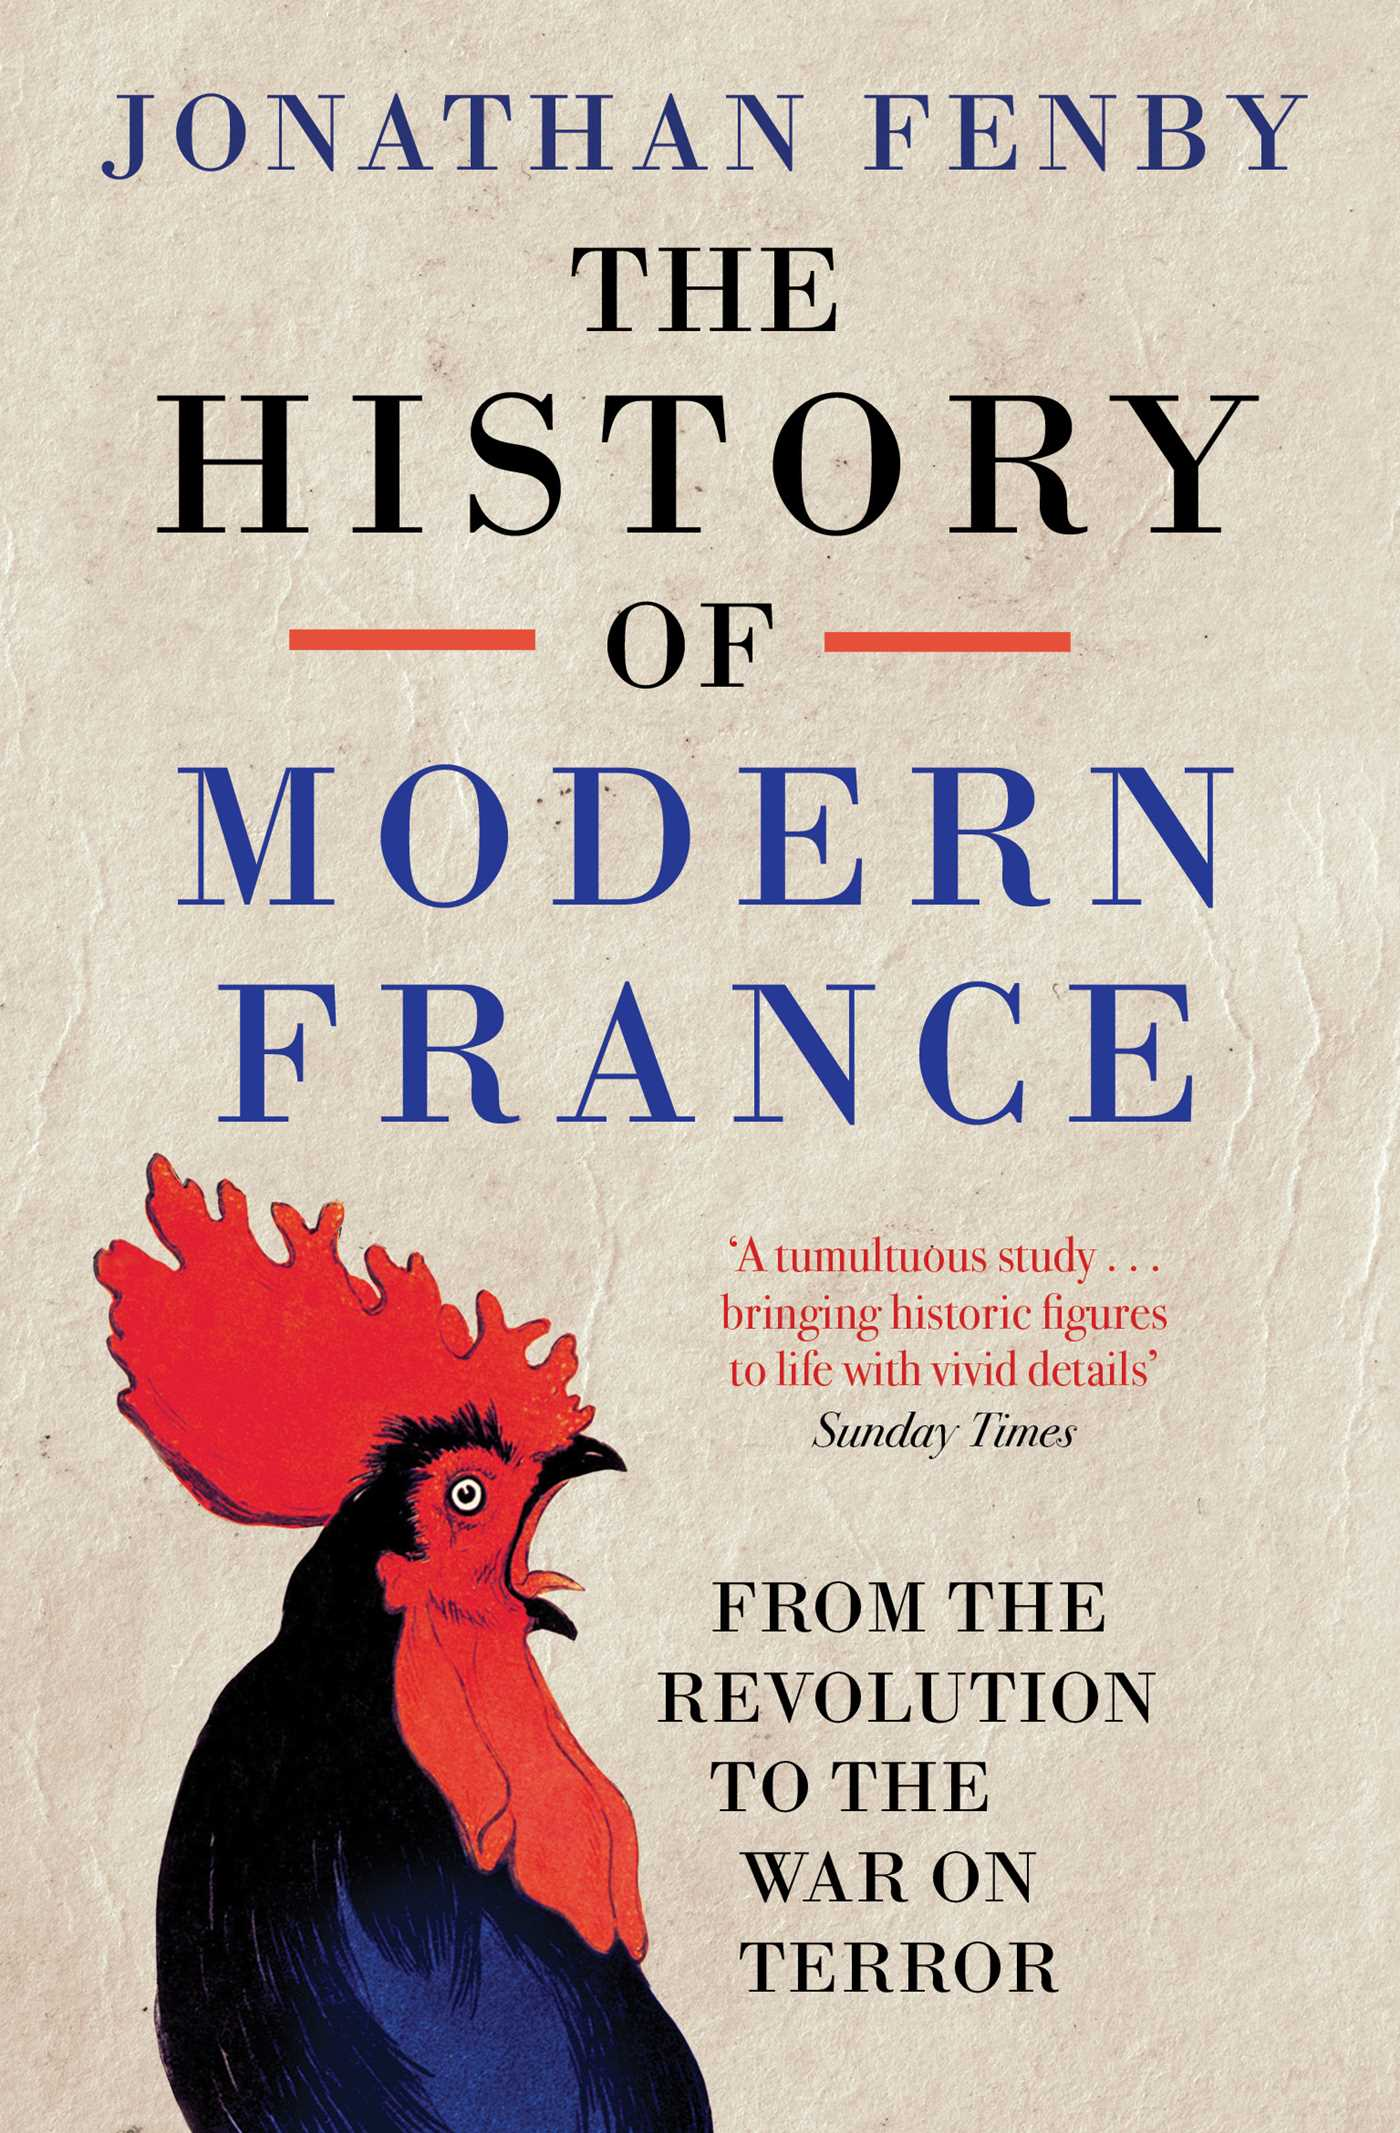 the history of modern france book by jonathan fenby official